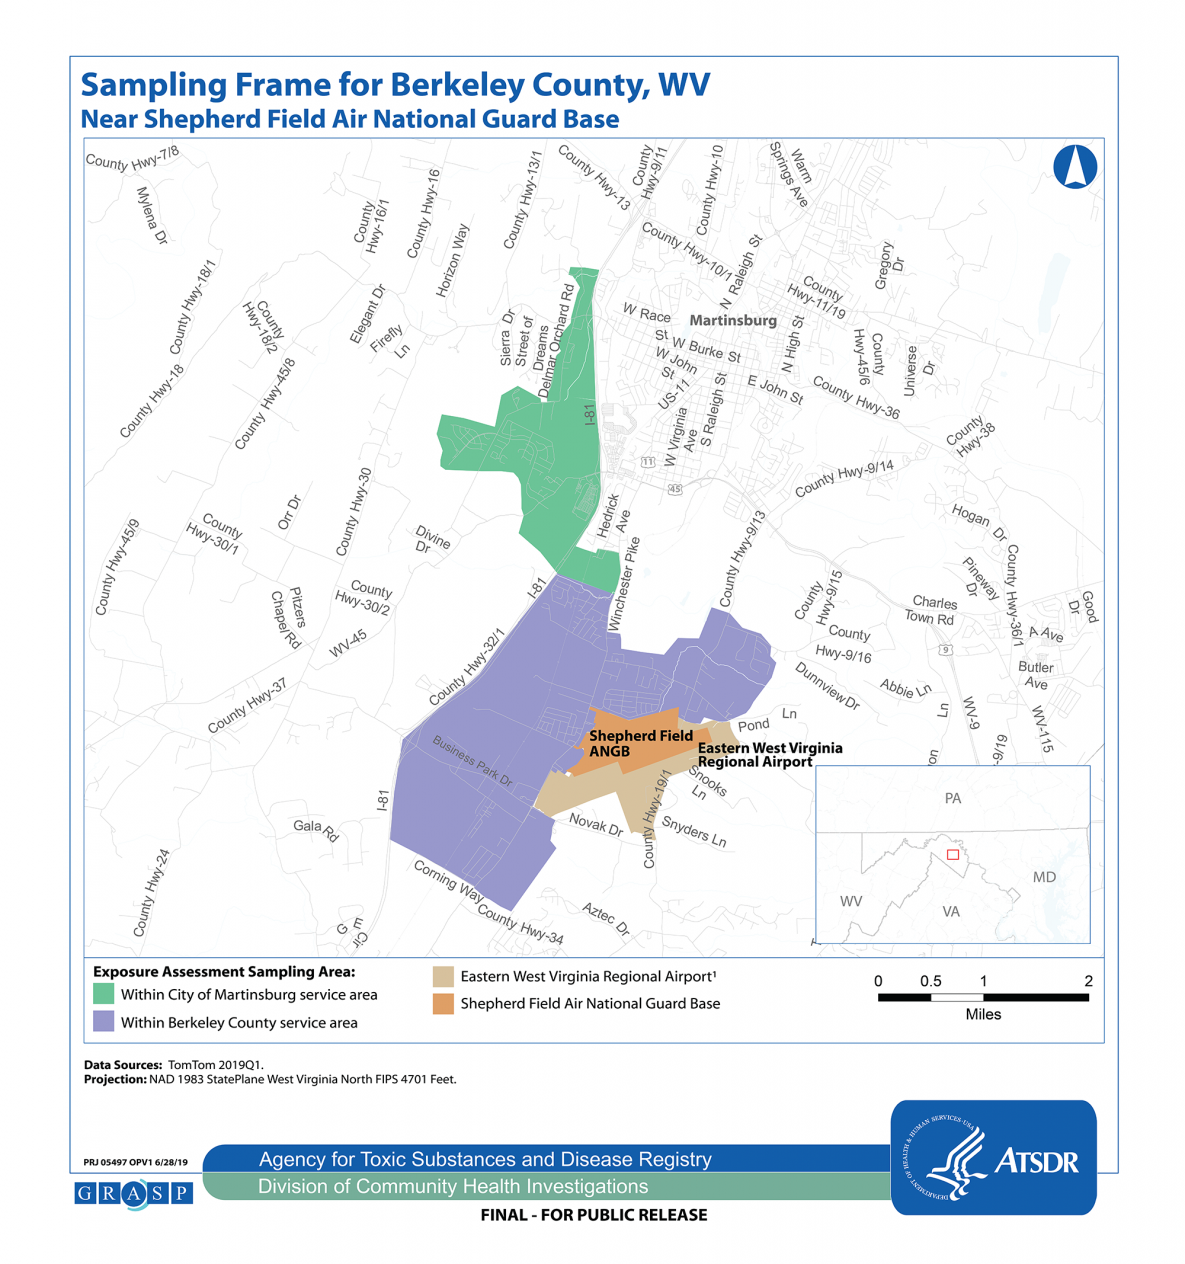 The map shows the sampling area where the exposure assessment will occur. It focuses on an area where residential tap water PFOA and/or PFOS concentrations were above federal or state guidelines. The boundary of this area represents Berkeley County residents who live south of the Big Springs treatment plant and City of Martinsburg residents who are connected to the municipal water supply and live west of Interstate 81 (I-81) or in the Amber Woods housing complex.